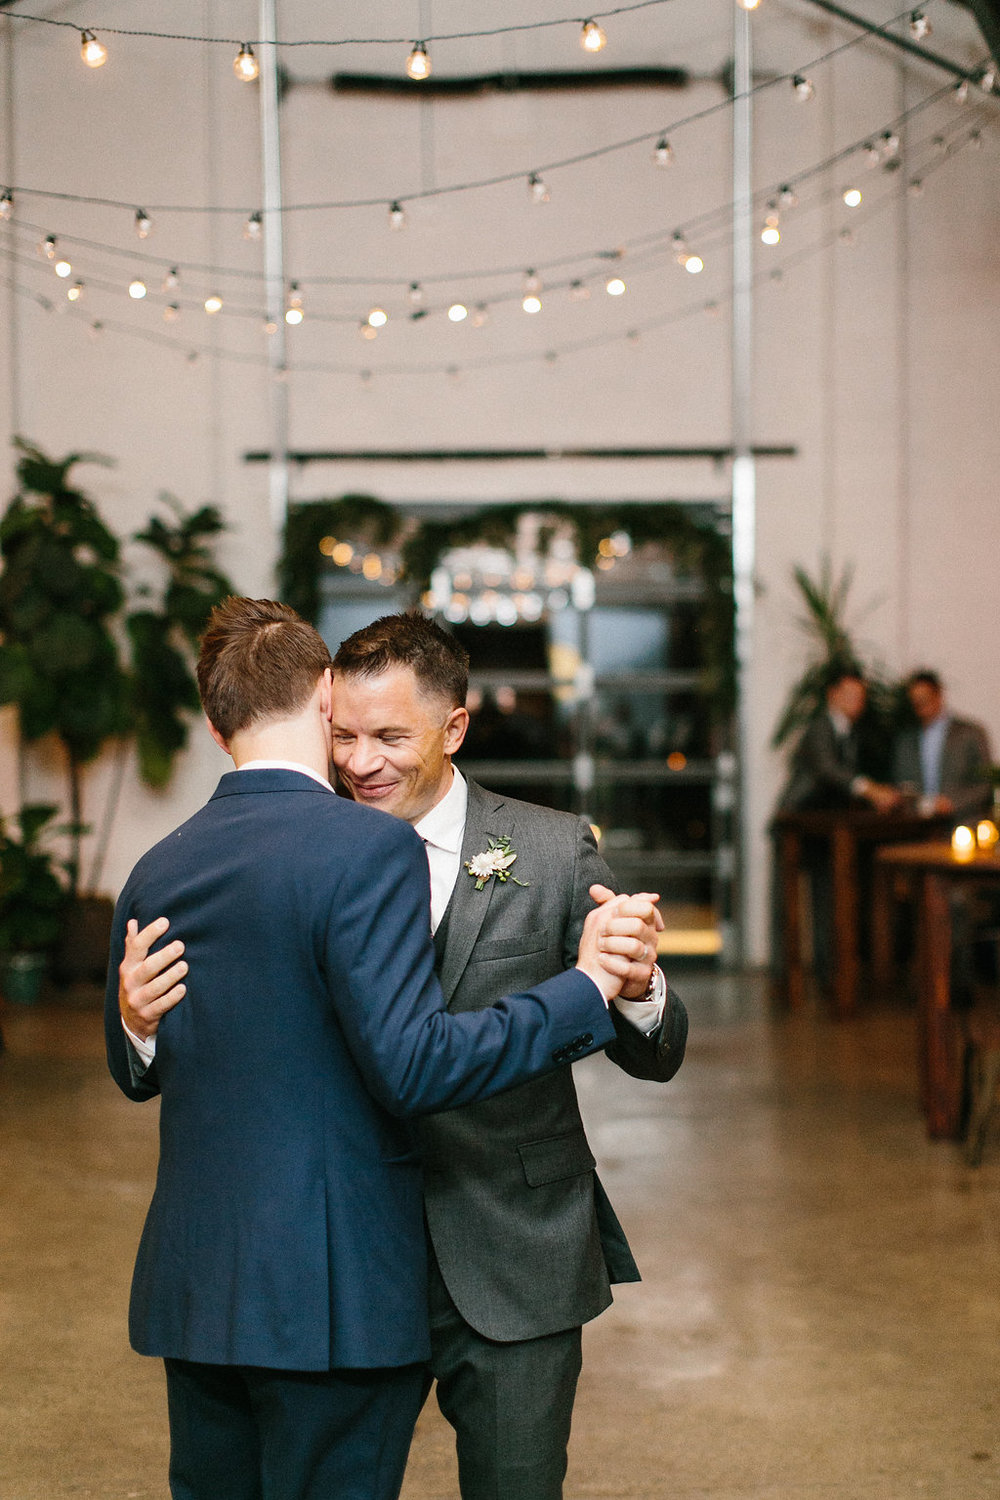 Carly Milbrath Photography | Justin and Jacob | PAIKKA Minnesota Wedding Venue | Same sex wedding iwth two grooms60.JPG